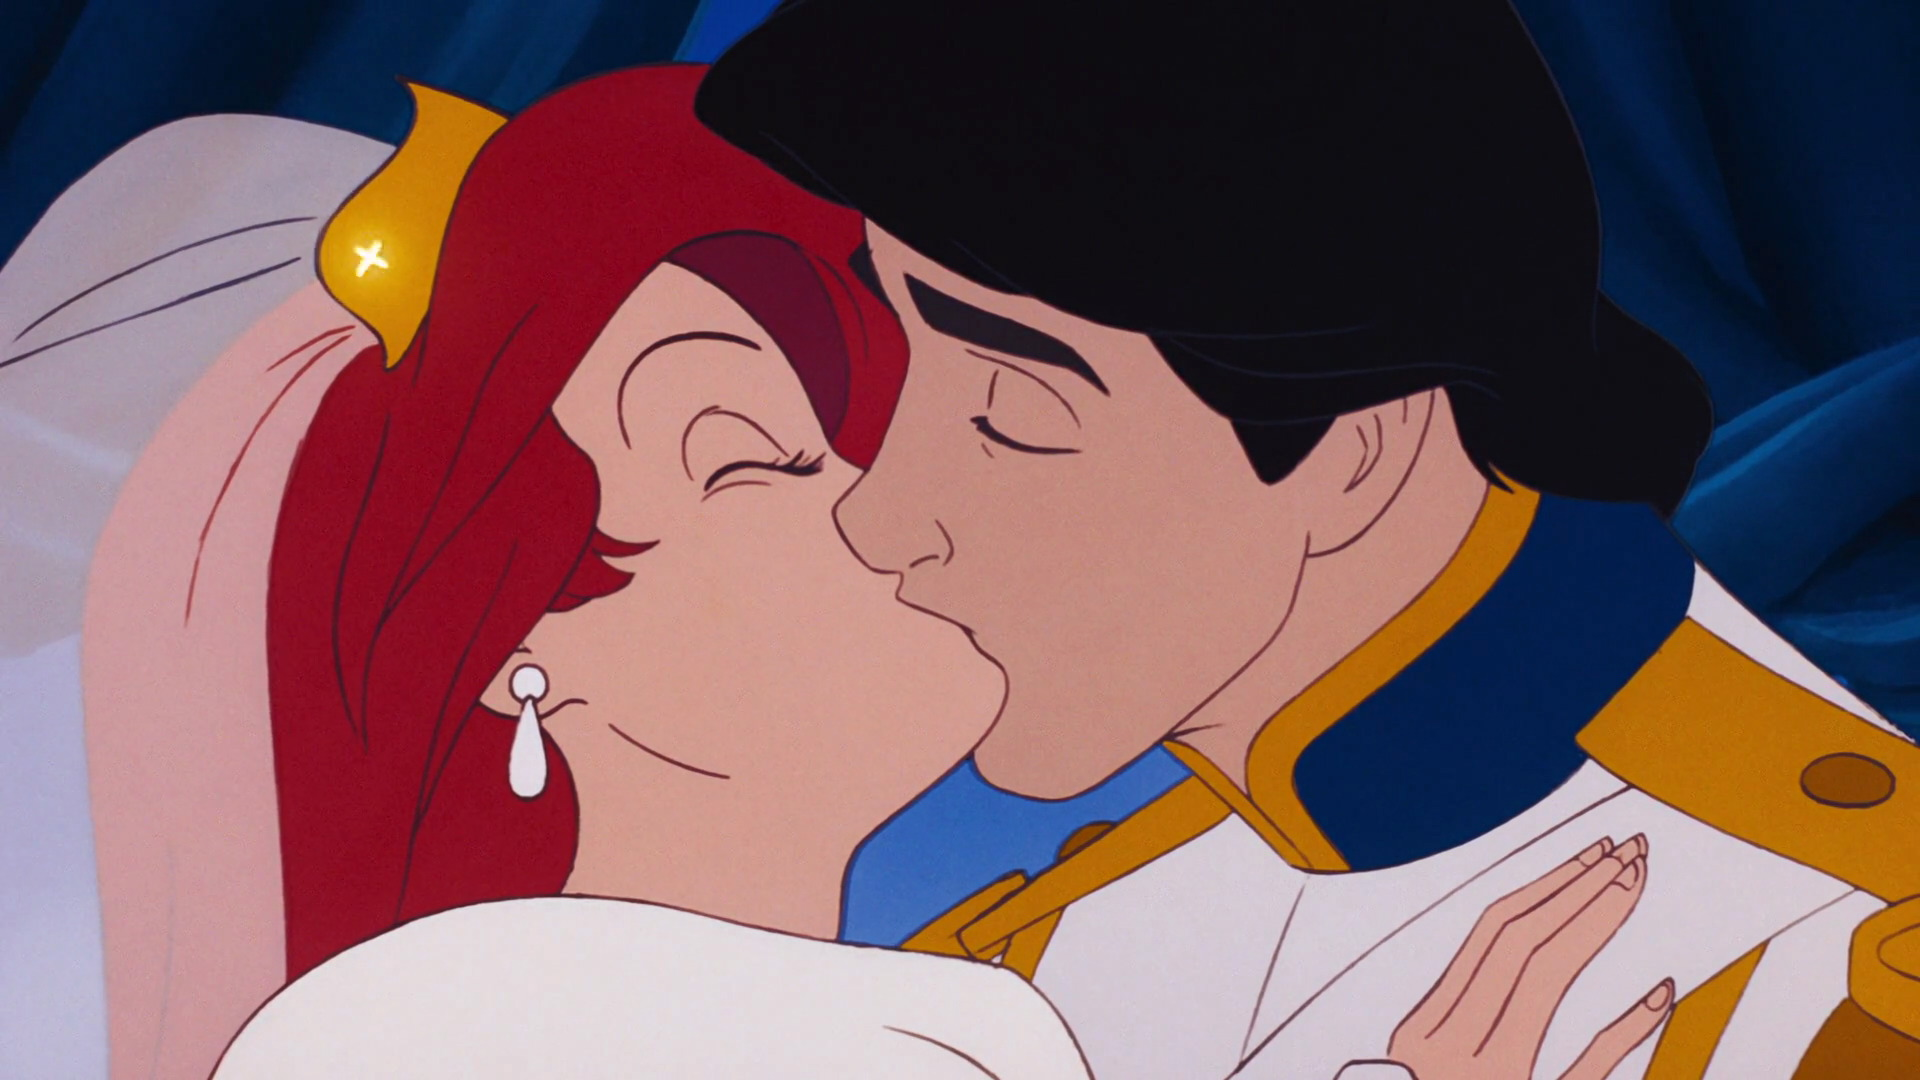 Image Ariel and Eric the princesses of disney 7228994 720 480